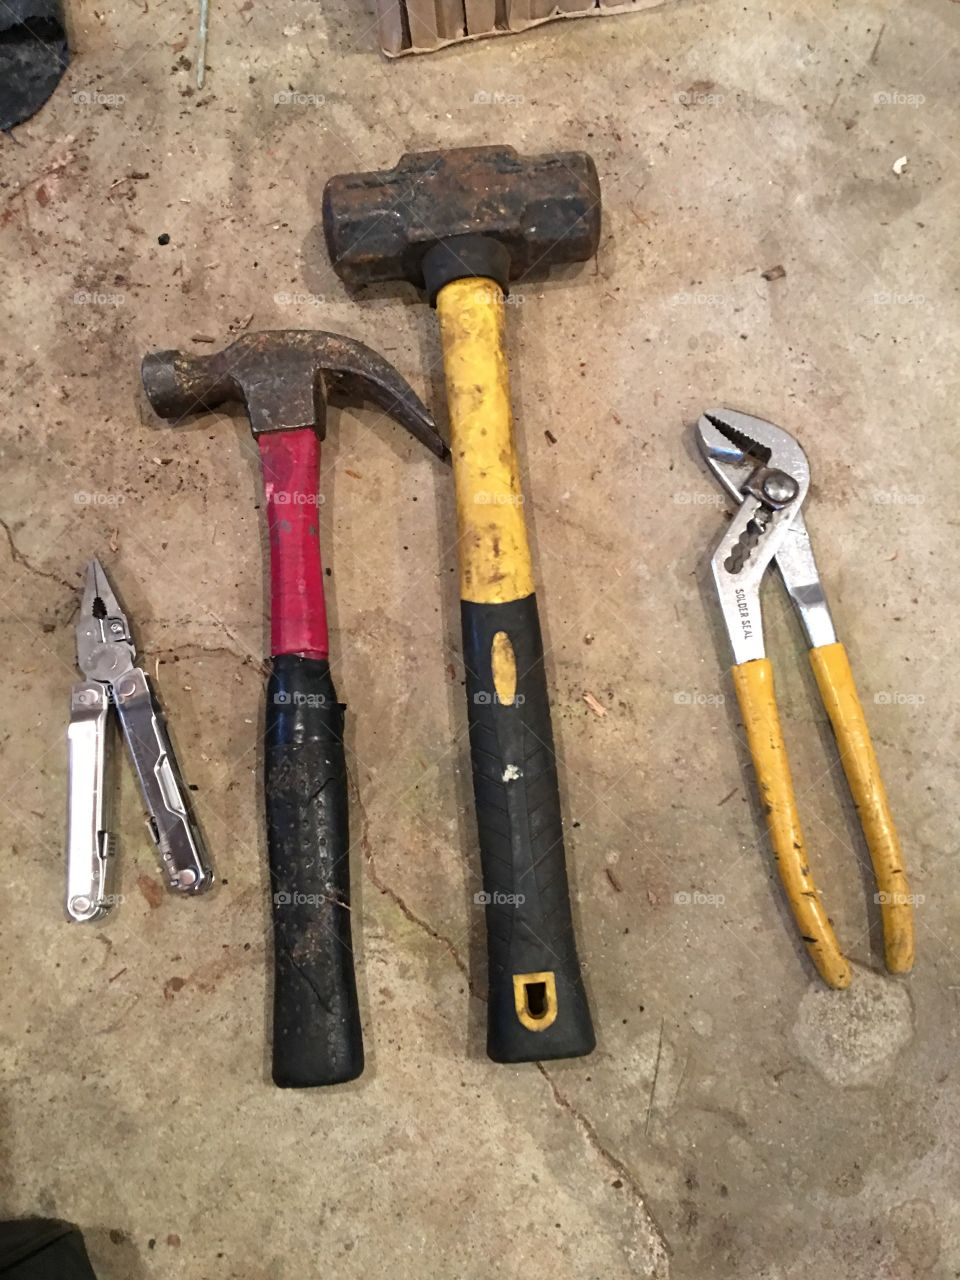 Leatherman tool, hammer, rubber mallet, wrench at the ready so I can help hubby!